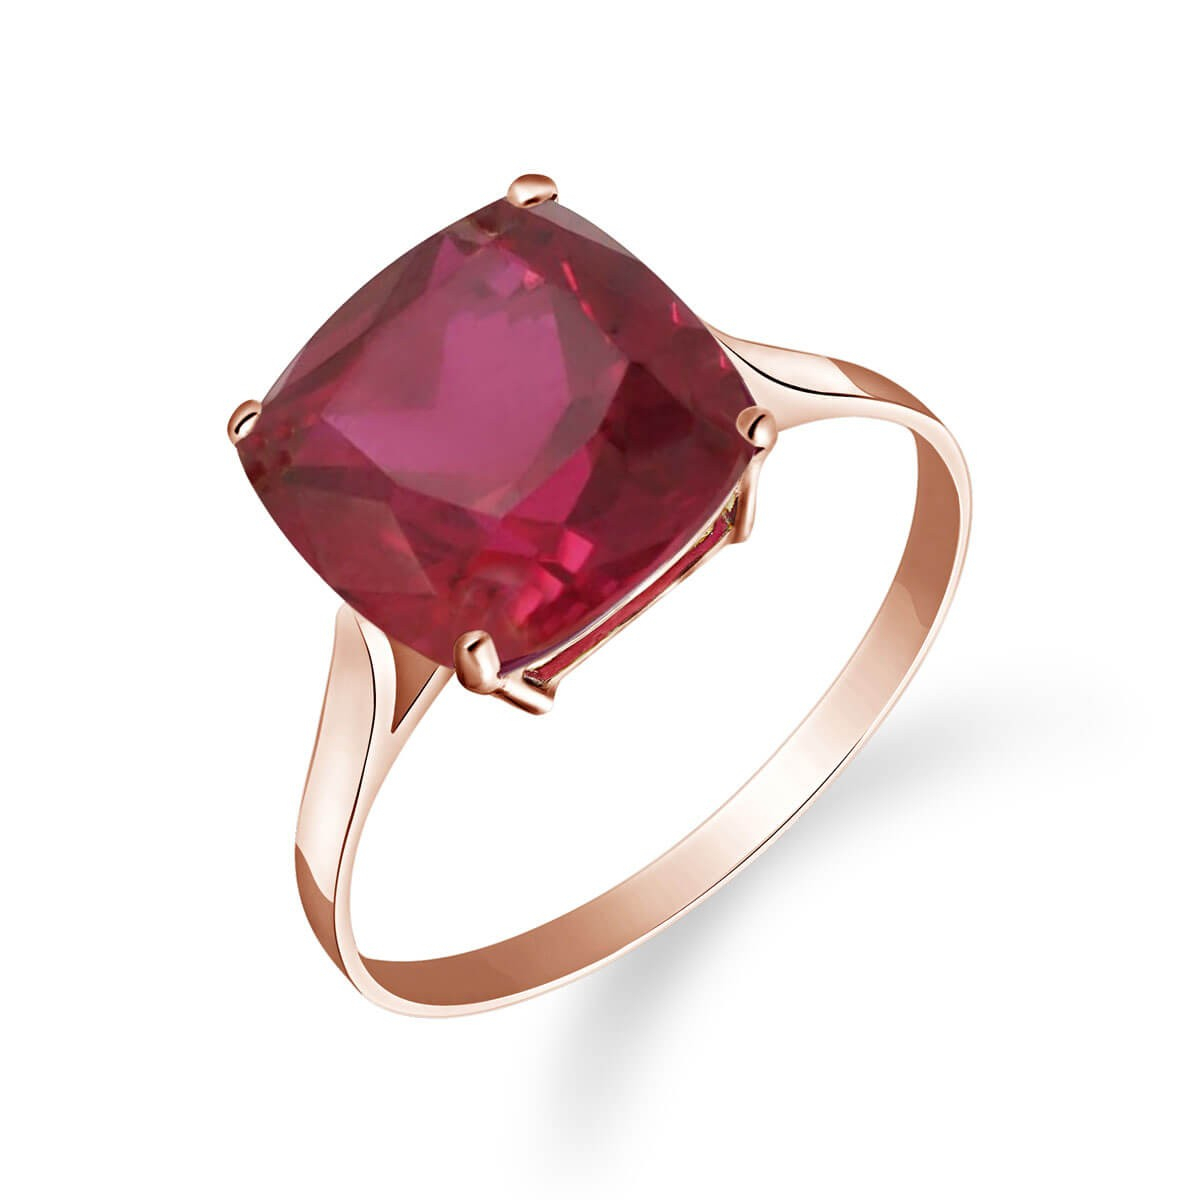 Cushion Cut Ruby Ring 4.7 Ct In 9Ct Rose Gold Pertaining To Cushion Cut Ruby Rings (Gallery 1 of 25)